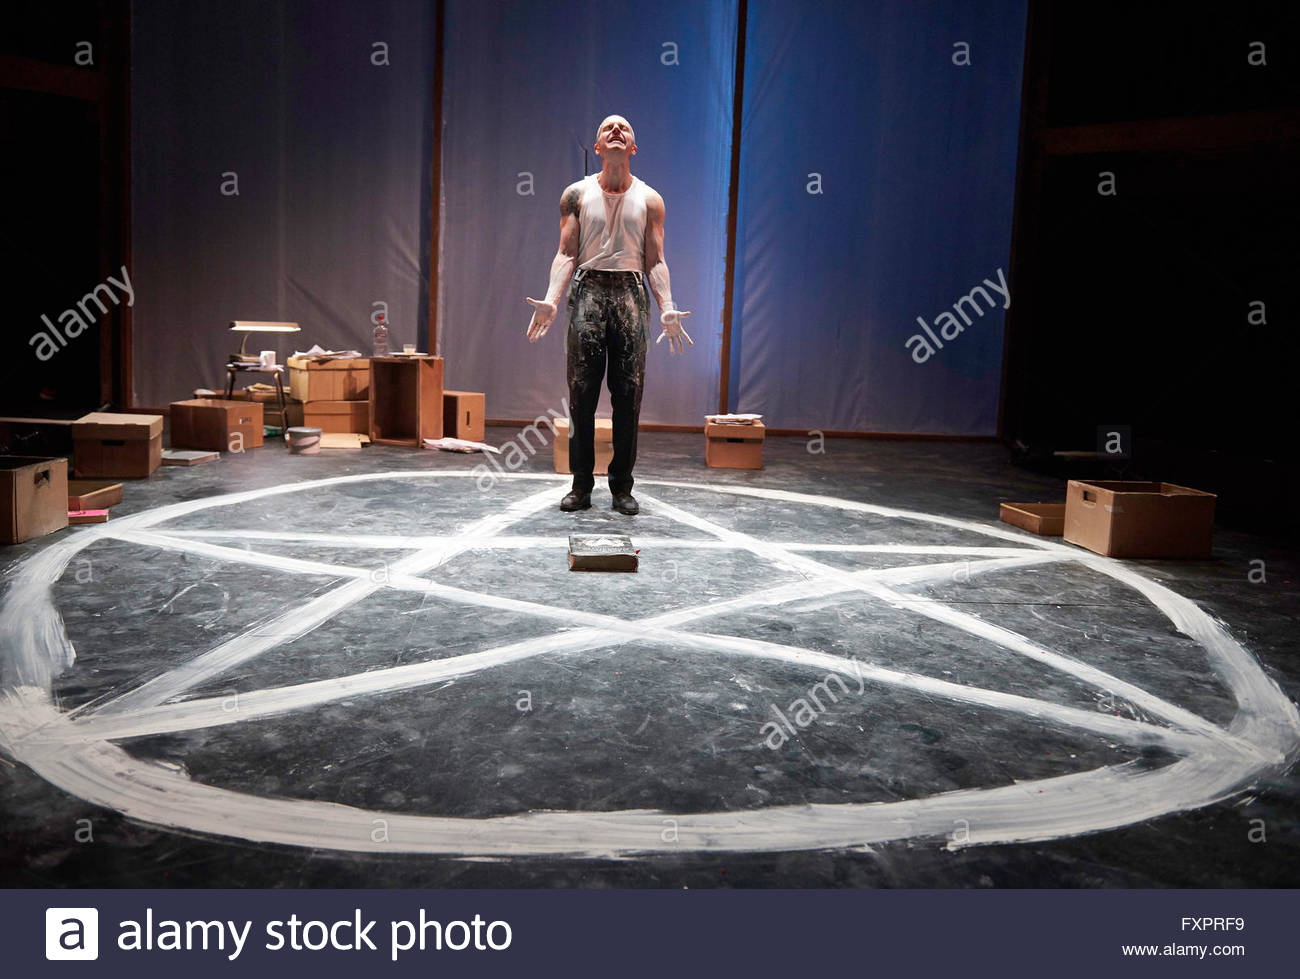 Doctor Faustus by Christopher Marlowe, A Royal Shakespeare Company Production directed by Maria Aberg. With Oliver - Stock Image